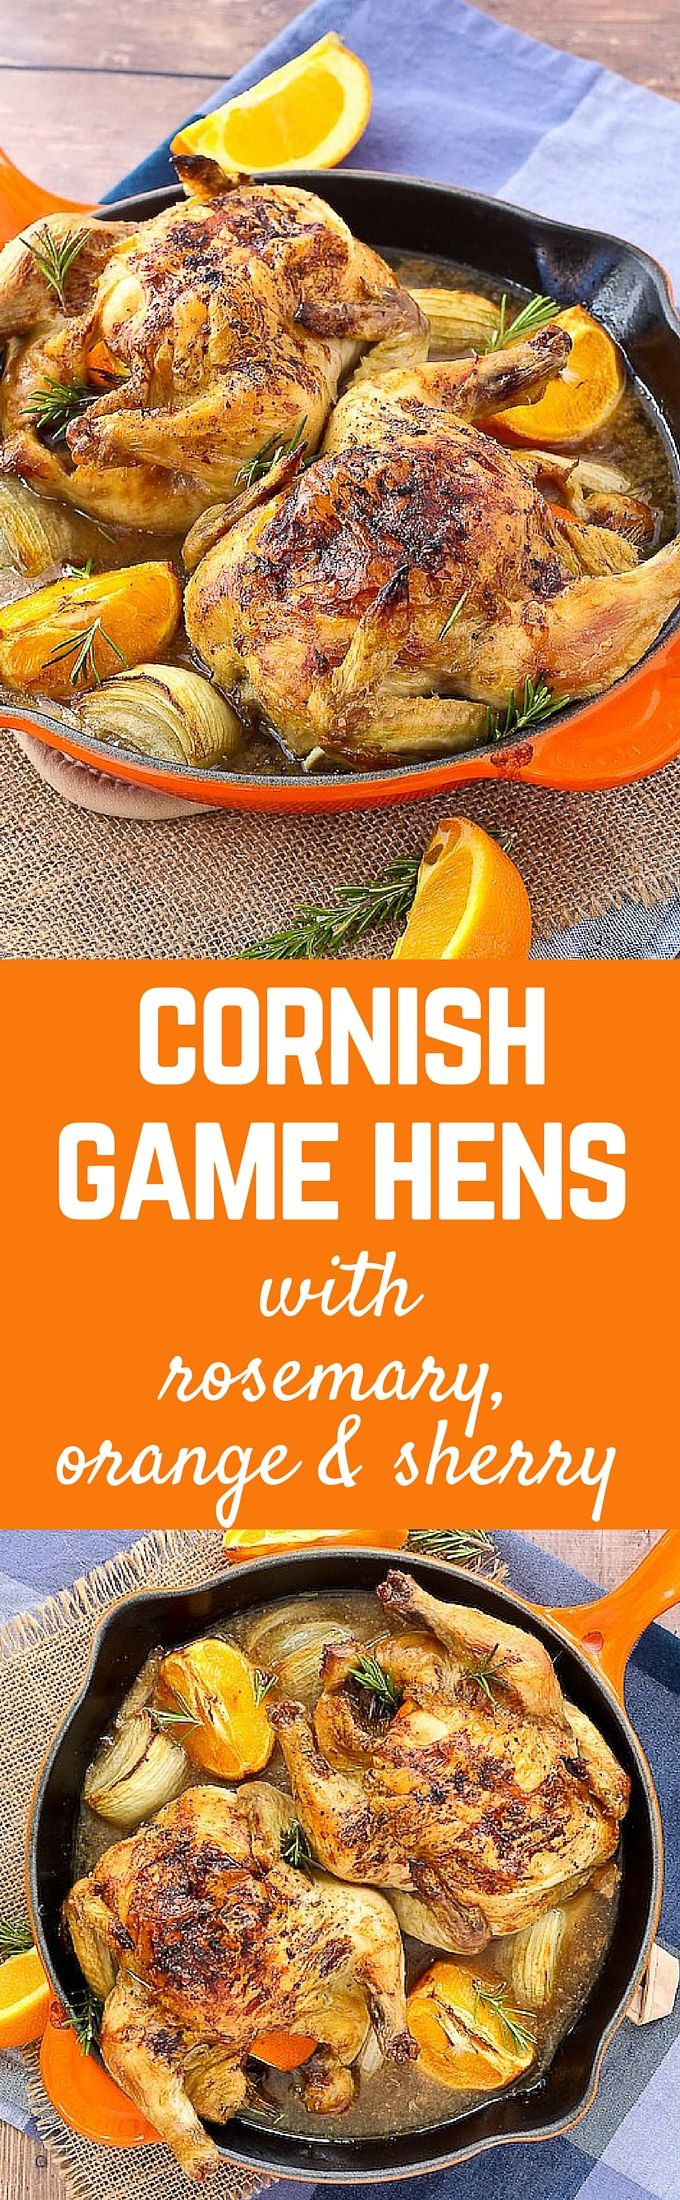 This Cornish Game Hen Recipe is perfect for Easter or any other special occasion! The bright flavors of the orange, sherry, and rosemary will have everyone wanting more. Get the recipe on RachelCooks.com! #sponsored @hollandhousecw